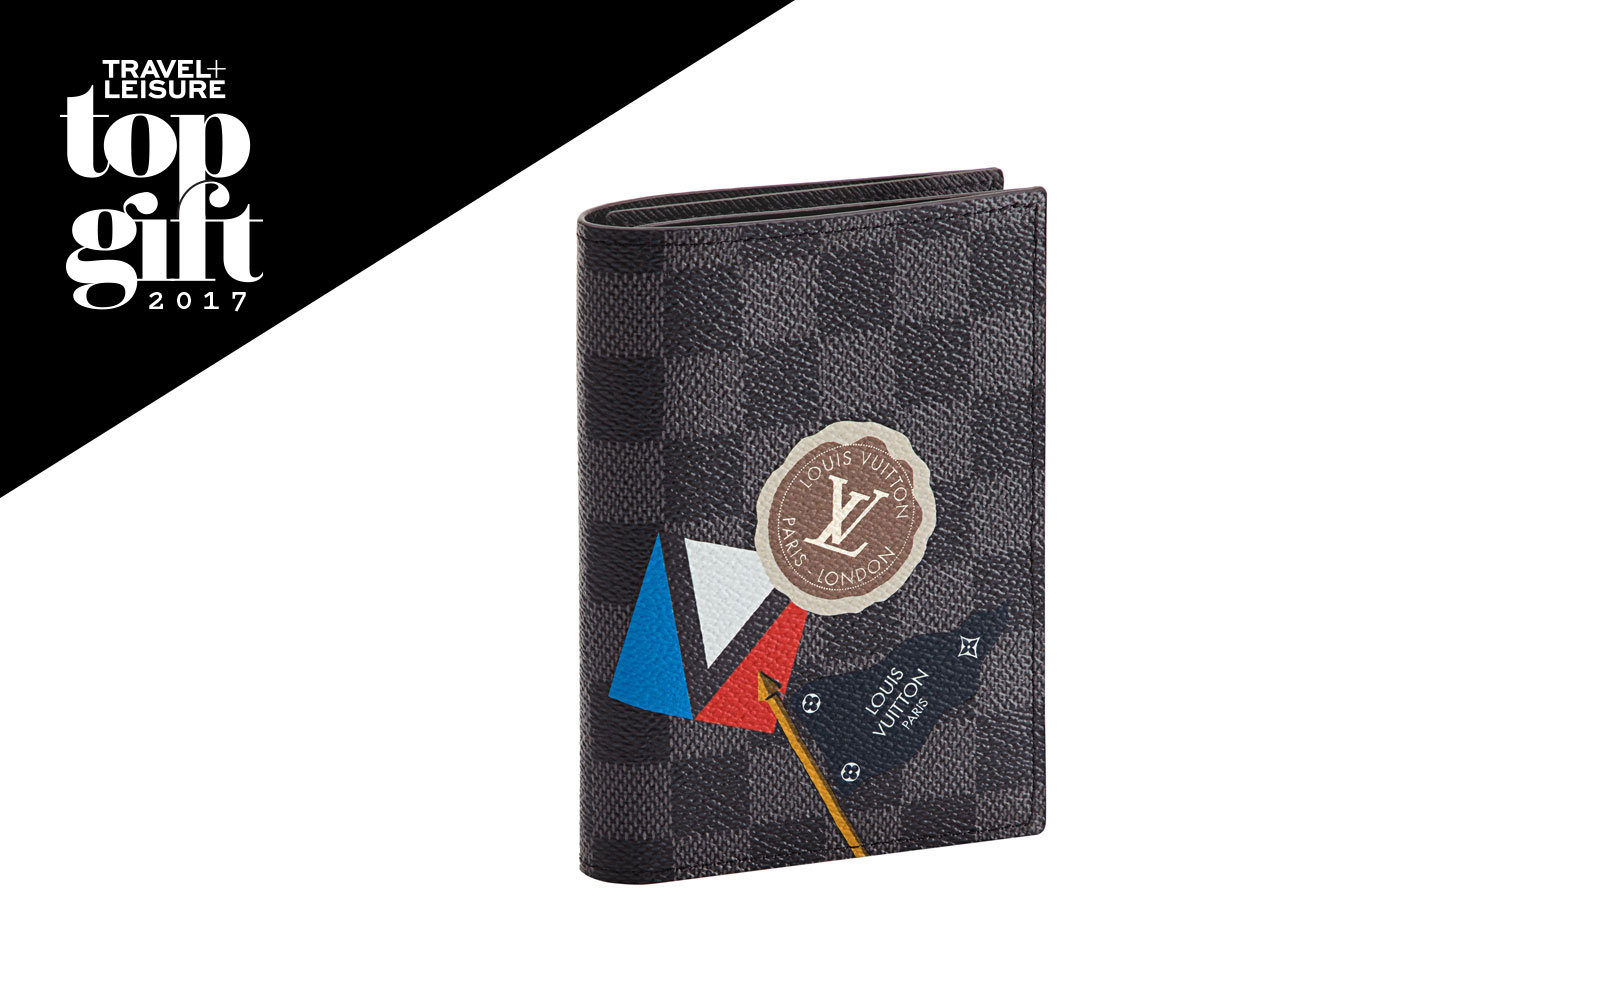 Louis Vuitton passport